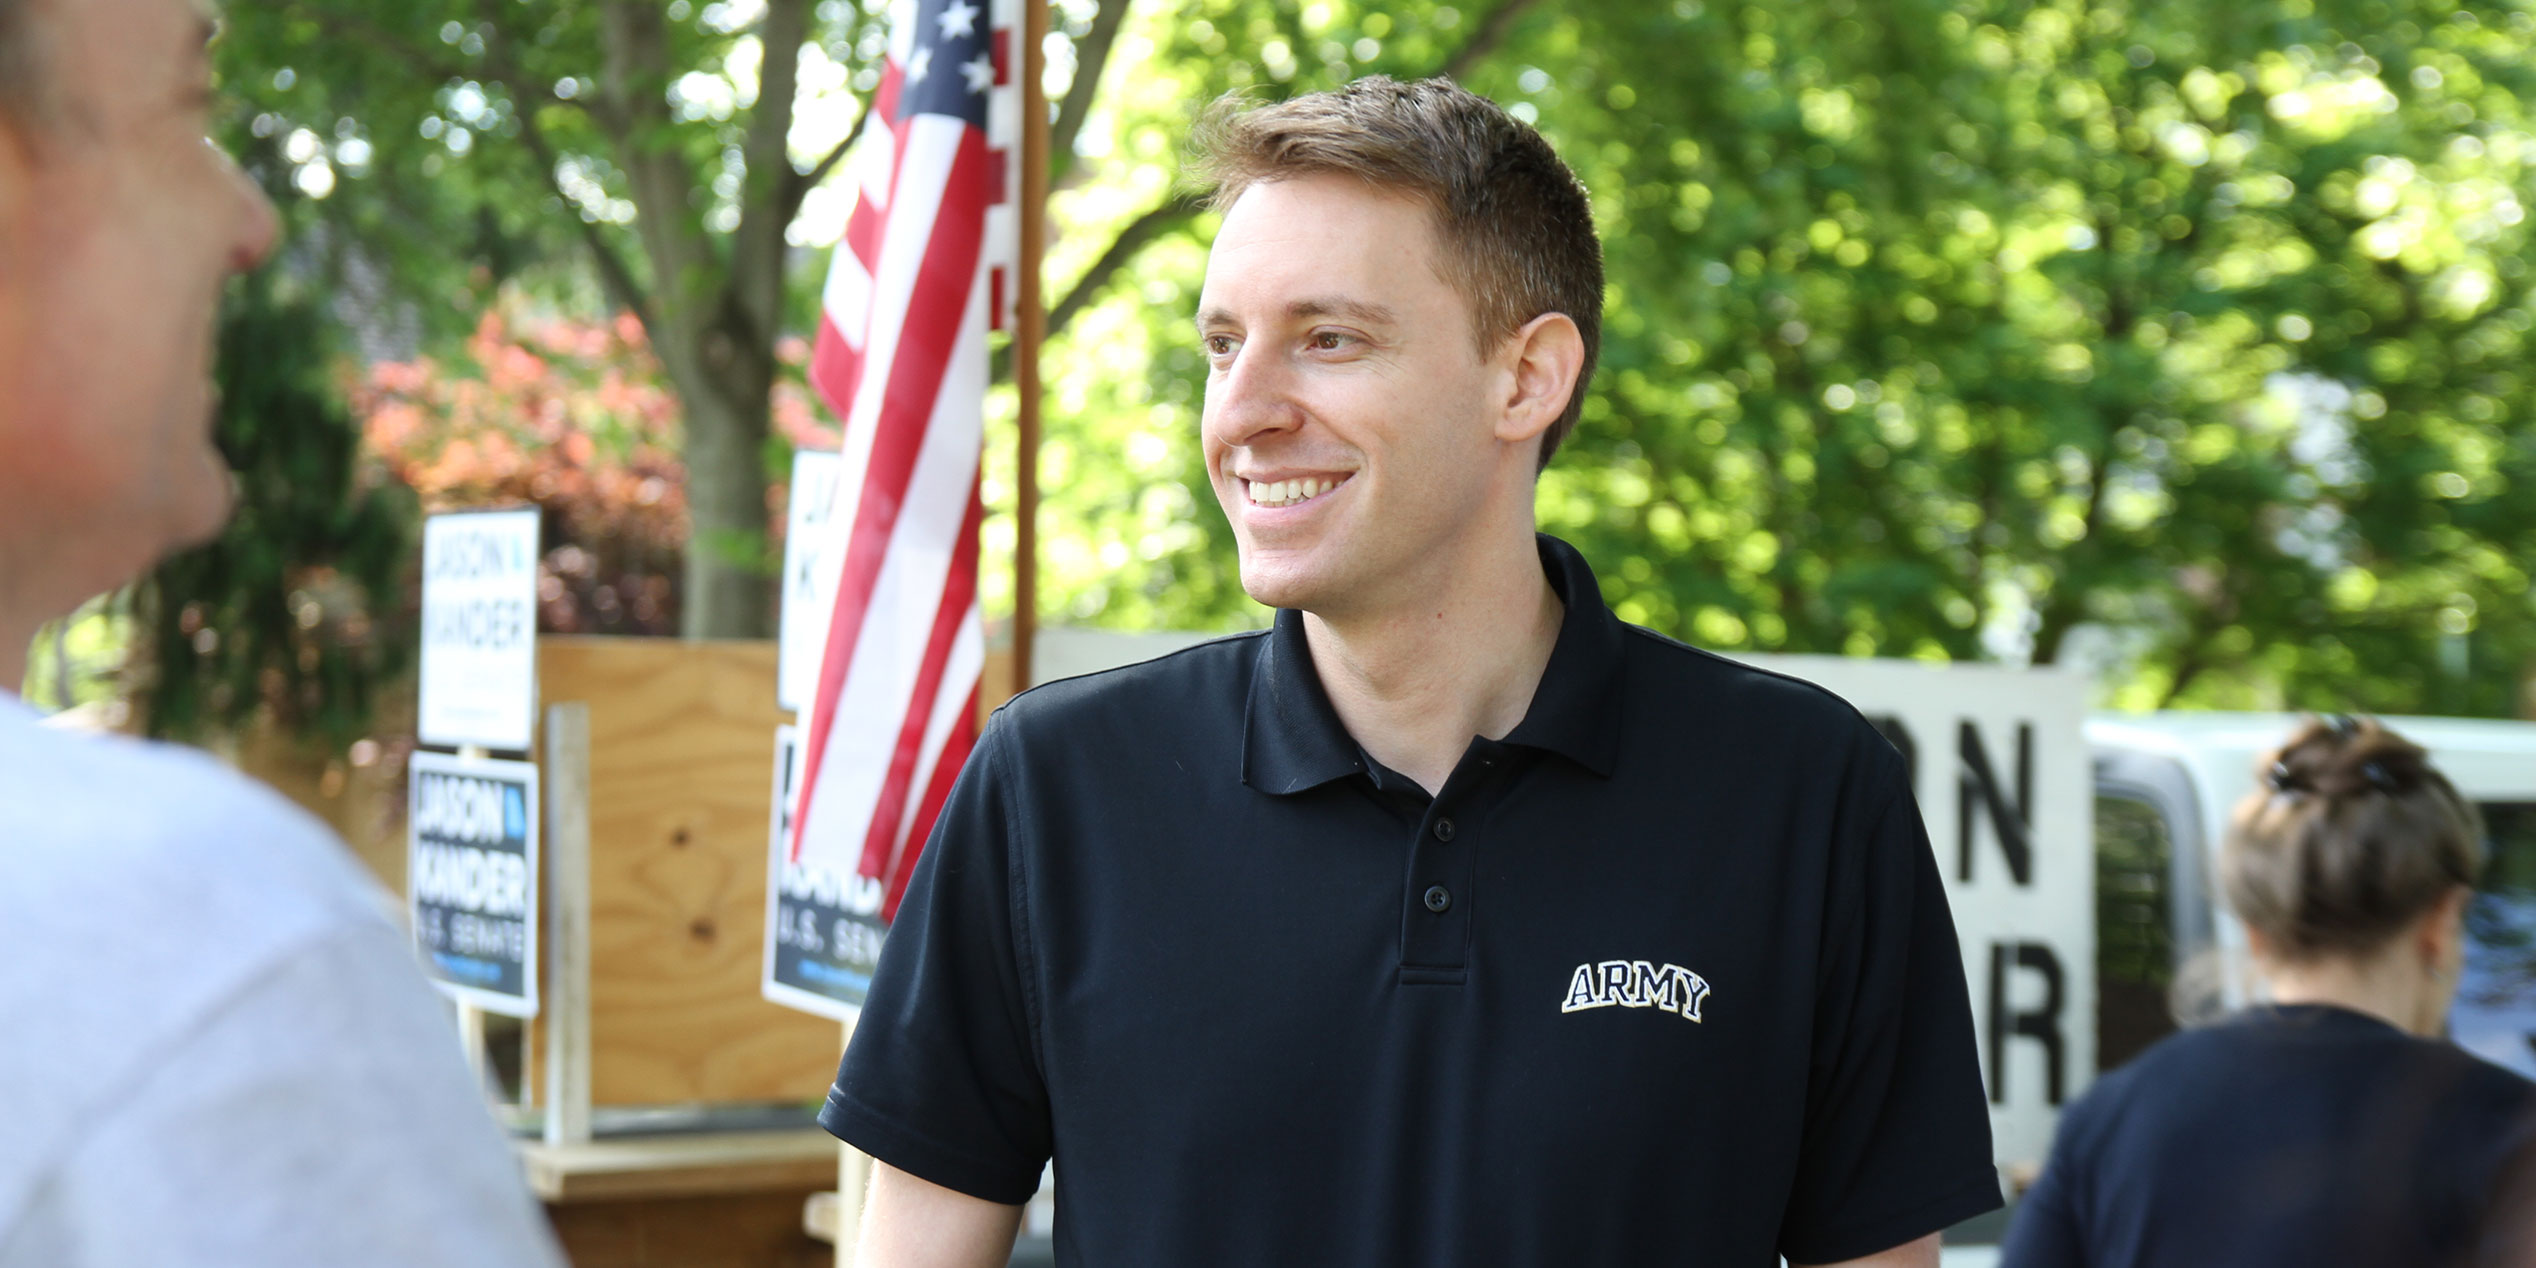 Jason Kander wearing an Army shirt standing outside with an American flag in the background